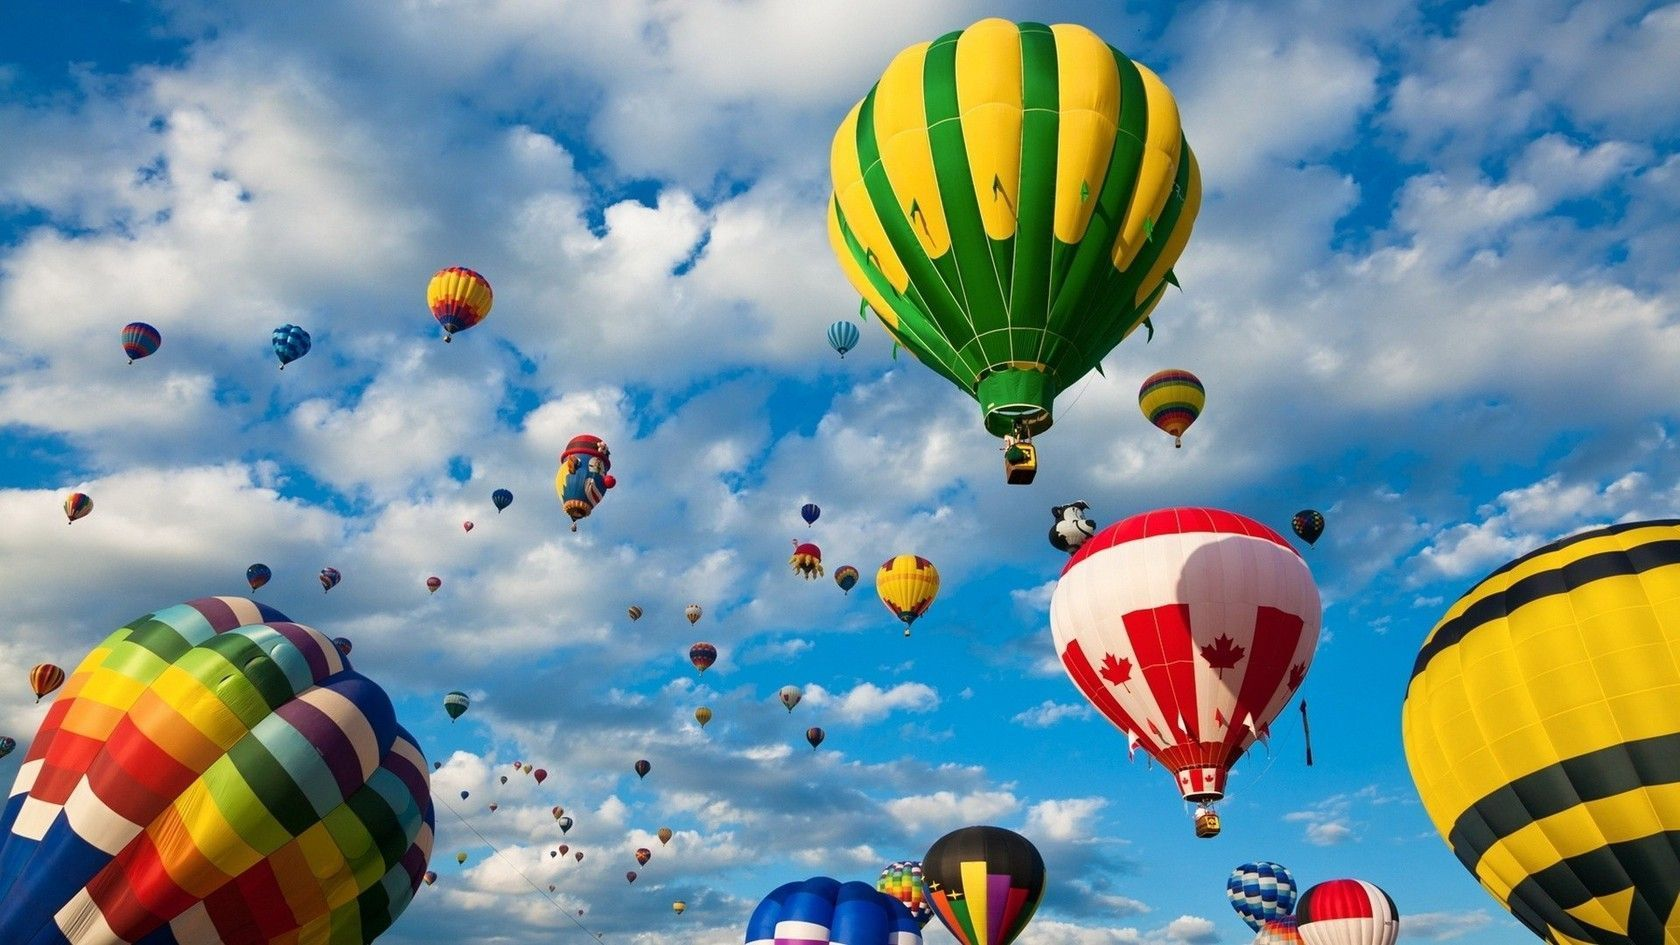 balloons images free